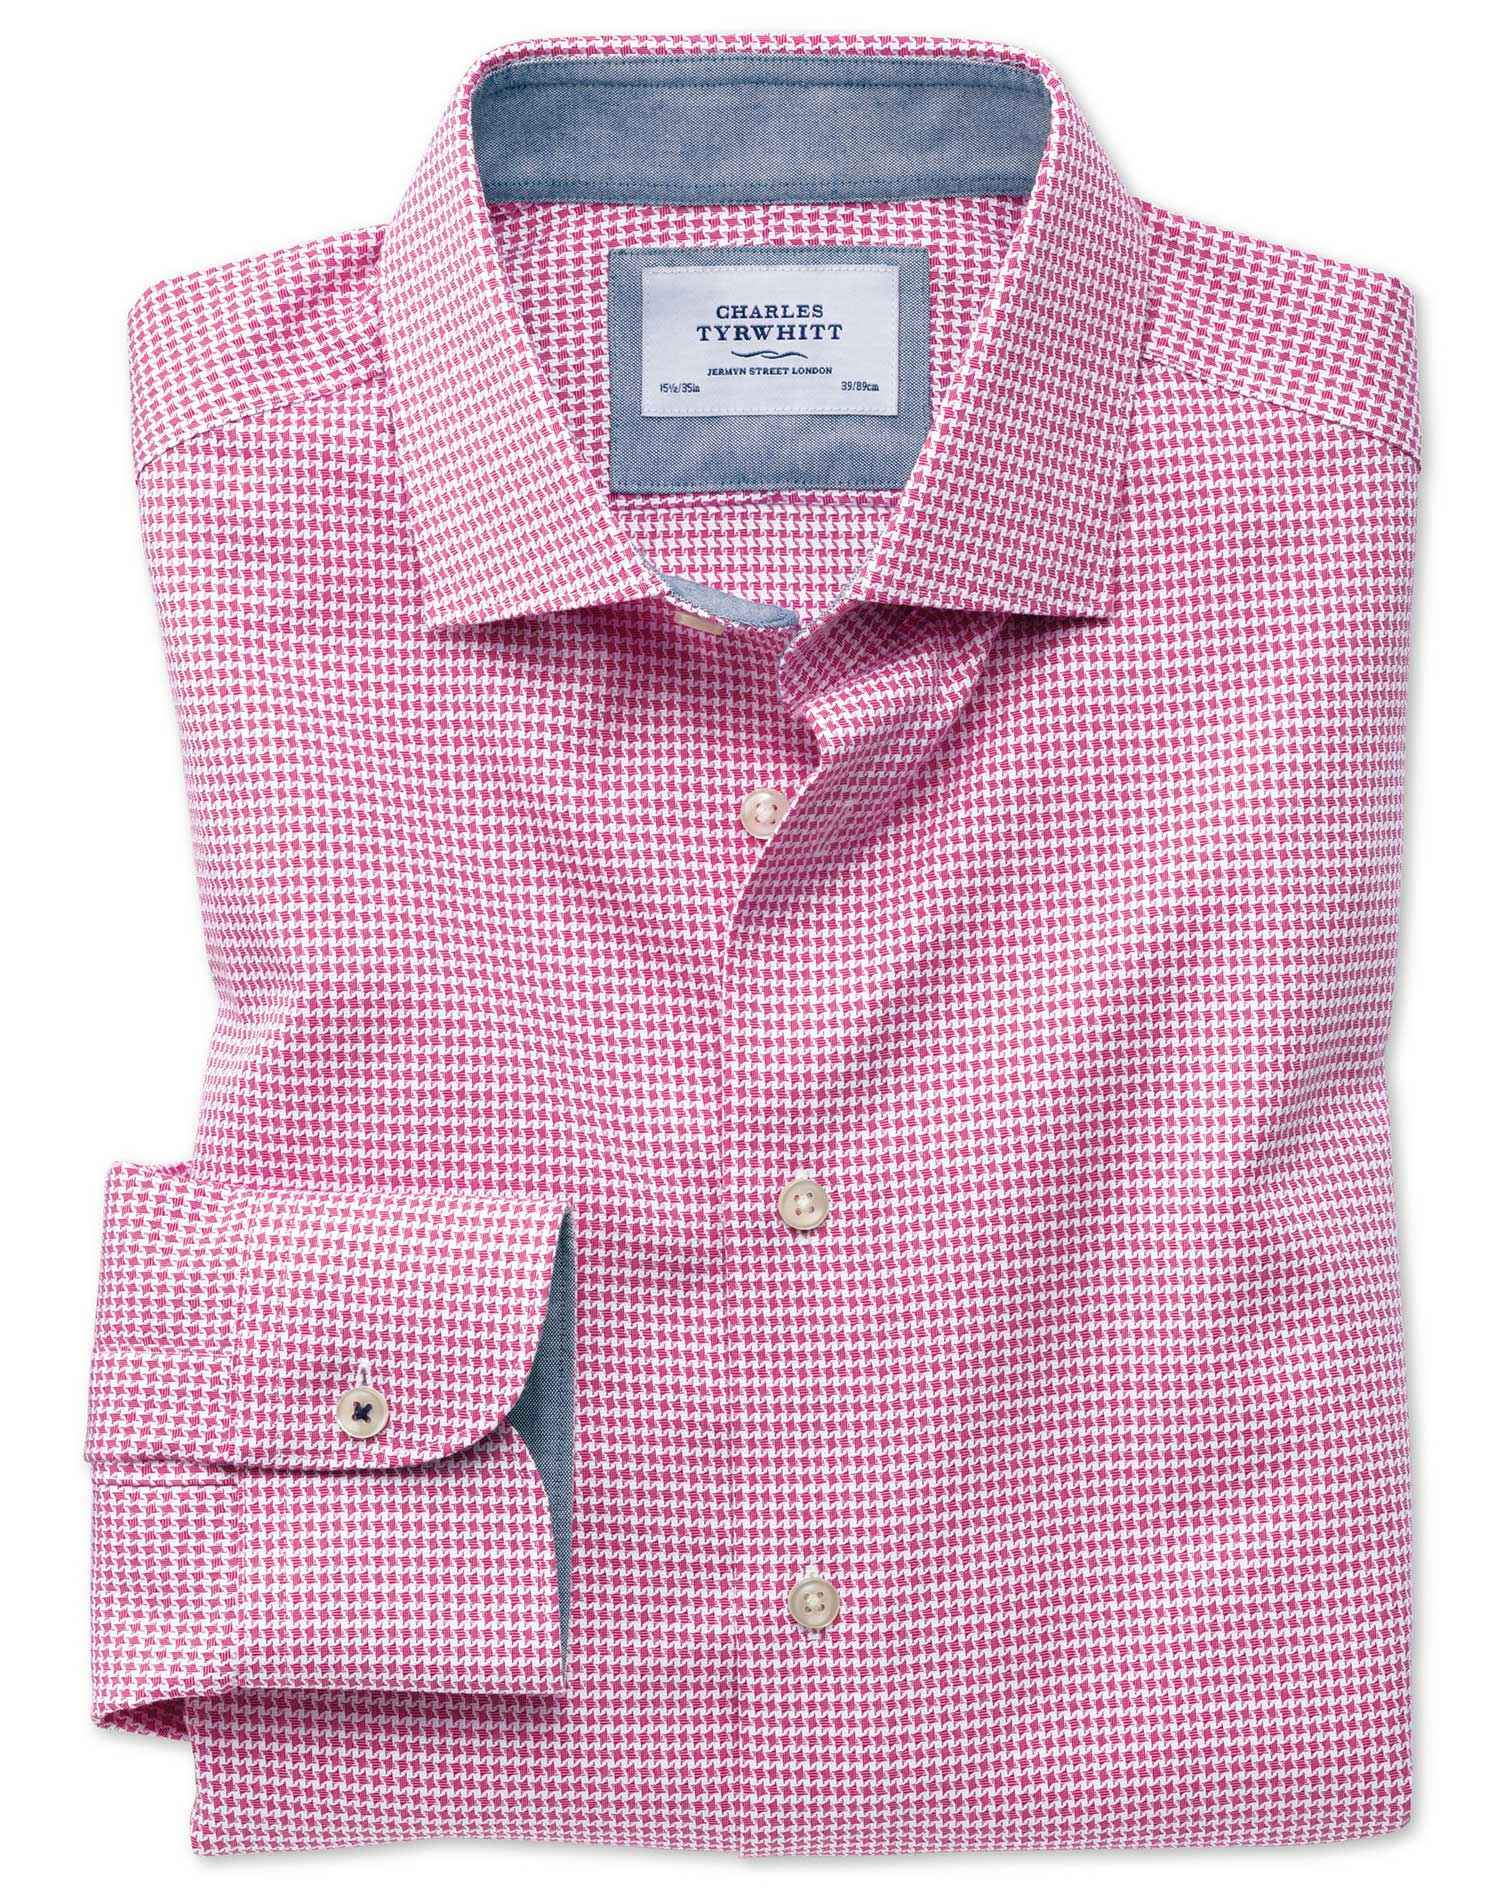 Slim Fit Semi-Cutaway Business Casual Non-Iron Modern Textures Pink Puppytooth Cotton Formal Shirt S